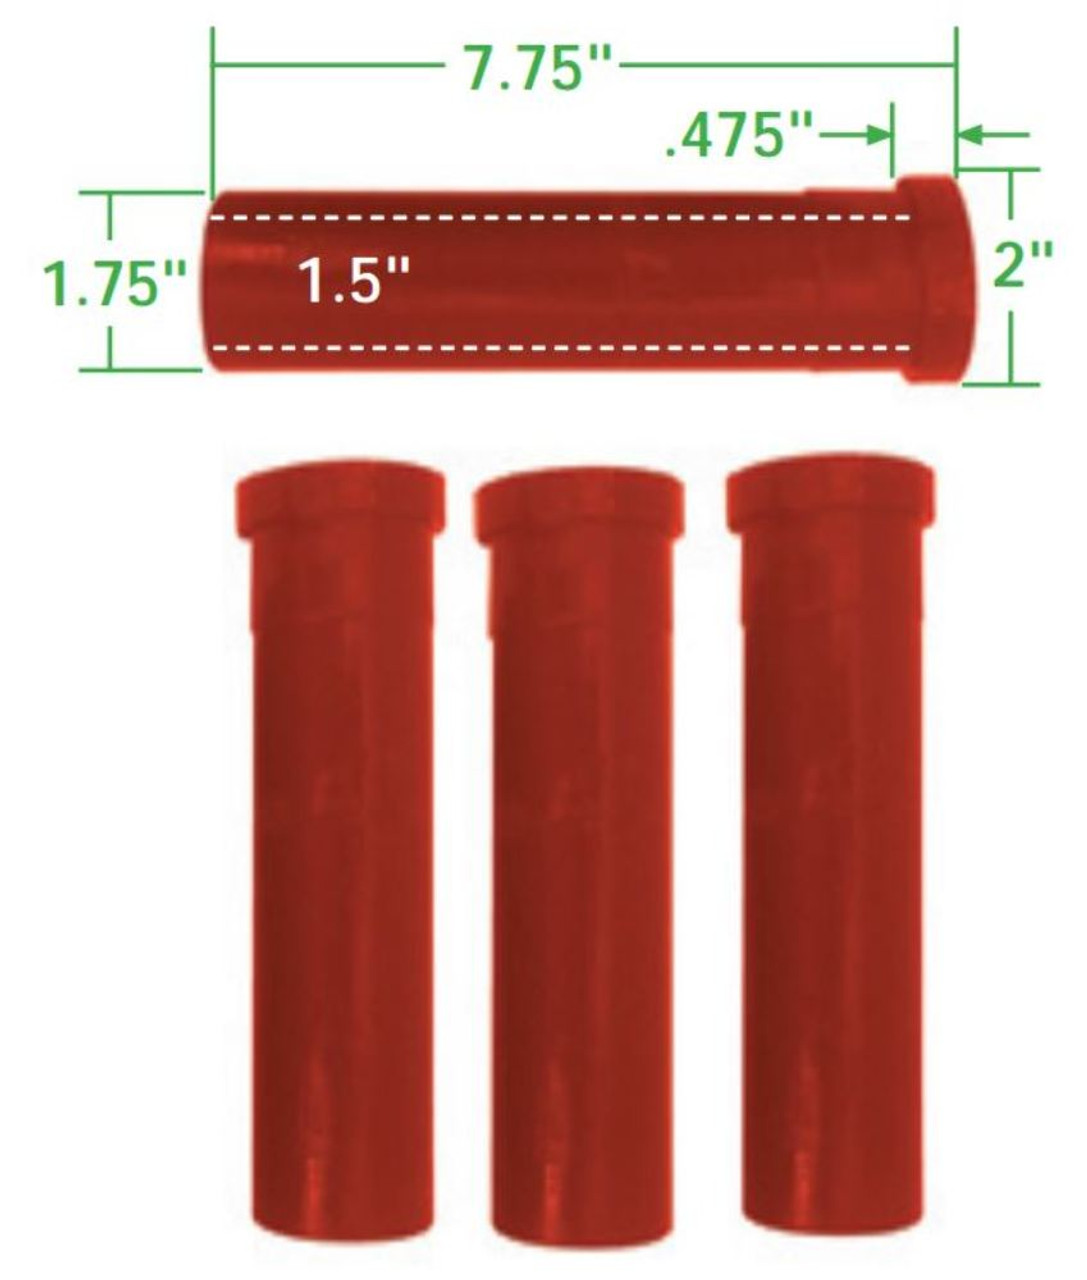 Axle Beam Bushings, 4pc, Urethane, Fits VW Inner & Outer Kink&Link W/Bearings, EMPI 16-5140